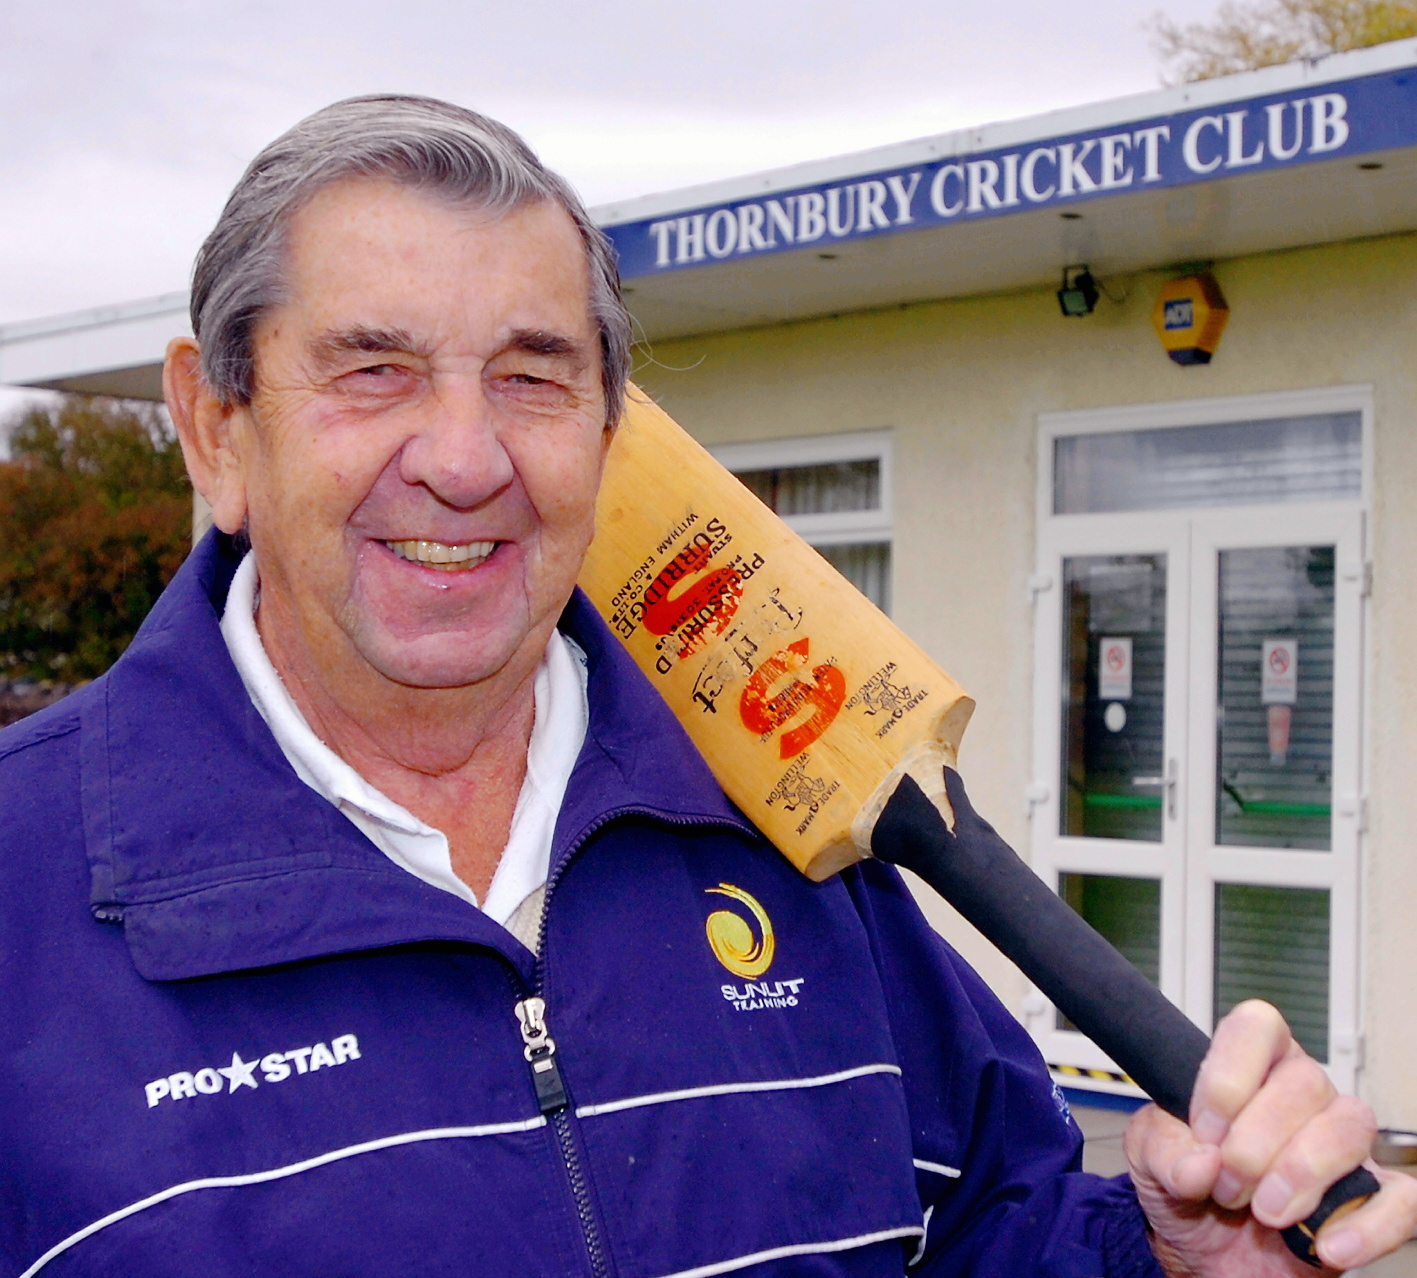 Former Gloucestershire and England cricketer David Allen